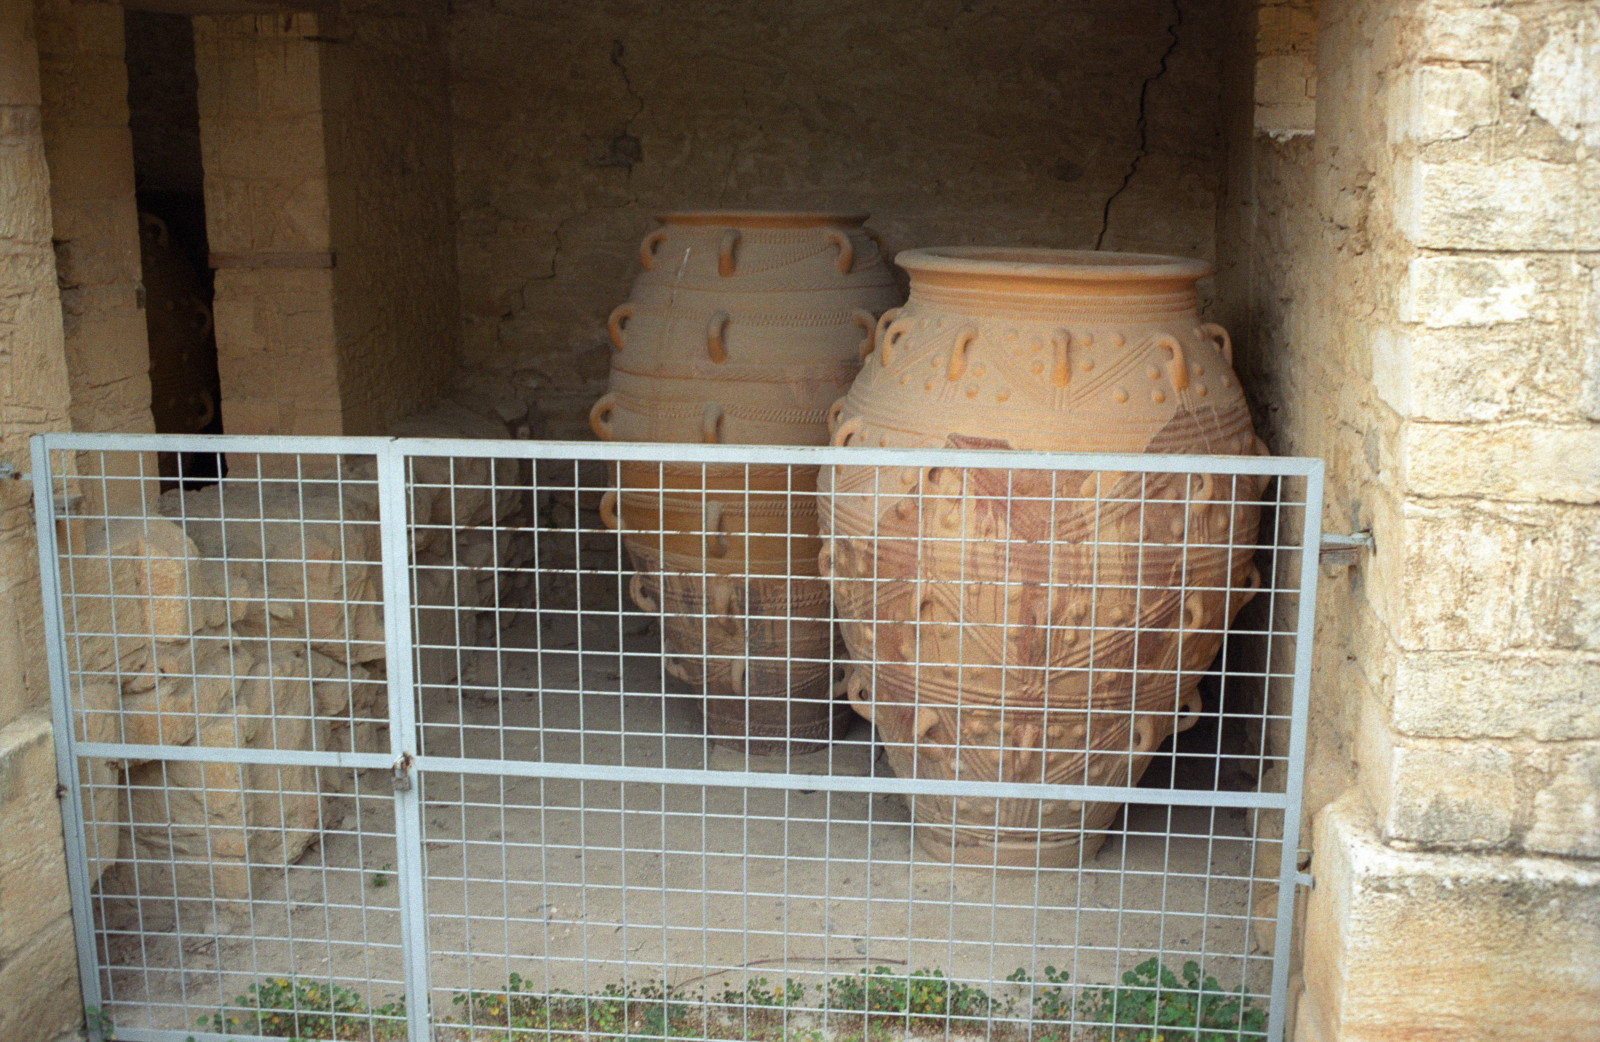 Barrels of Olive Oil